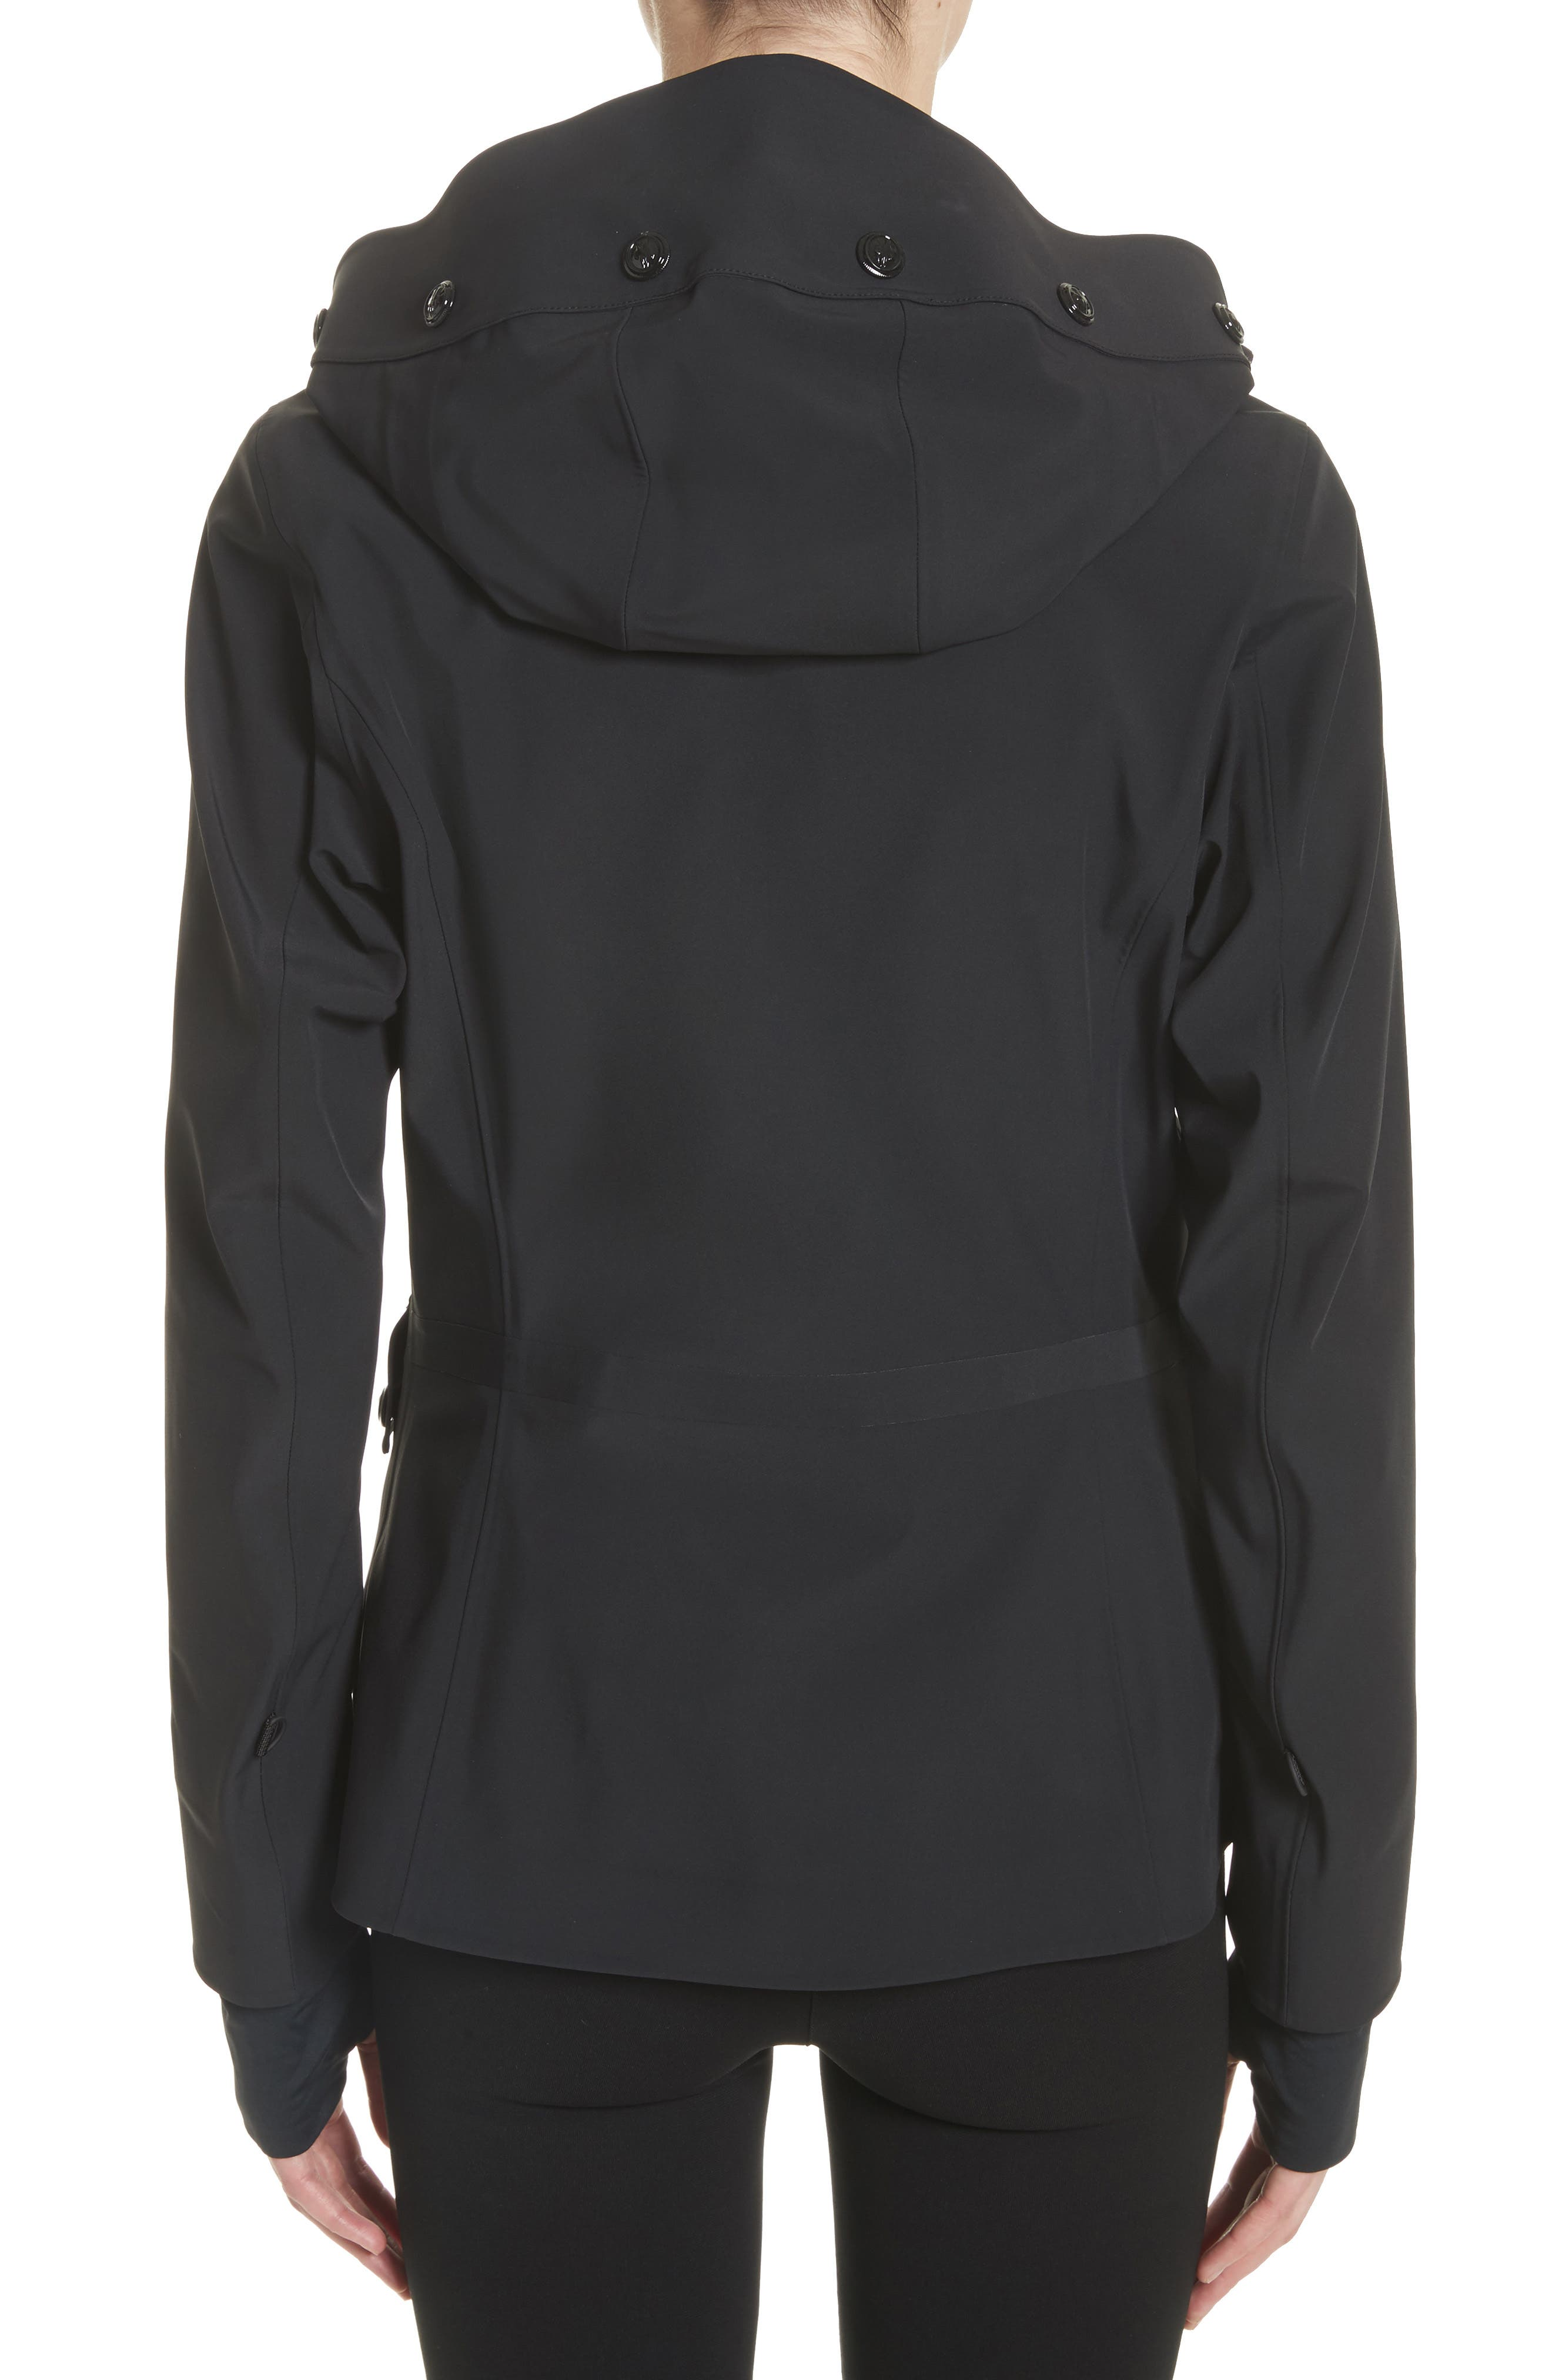 Lozere Waterproof Hooded Jacket,                             Alternate thumbnail 2, color,                             Black